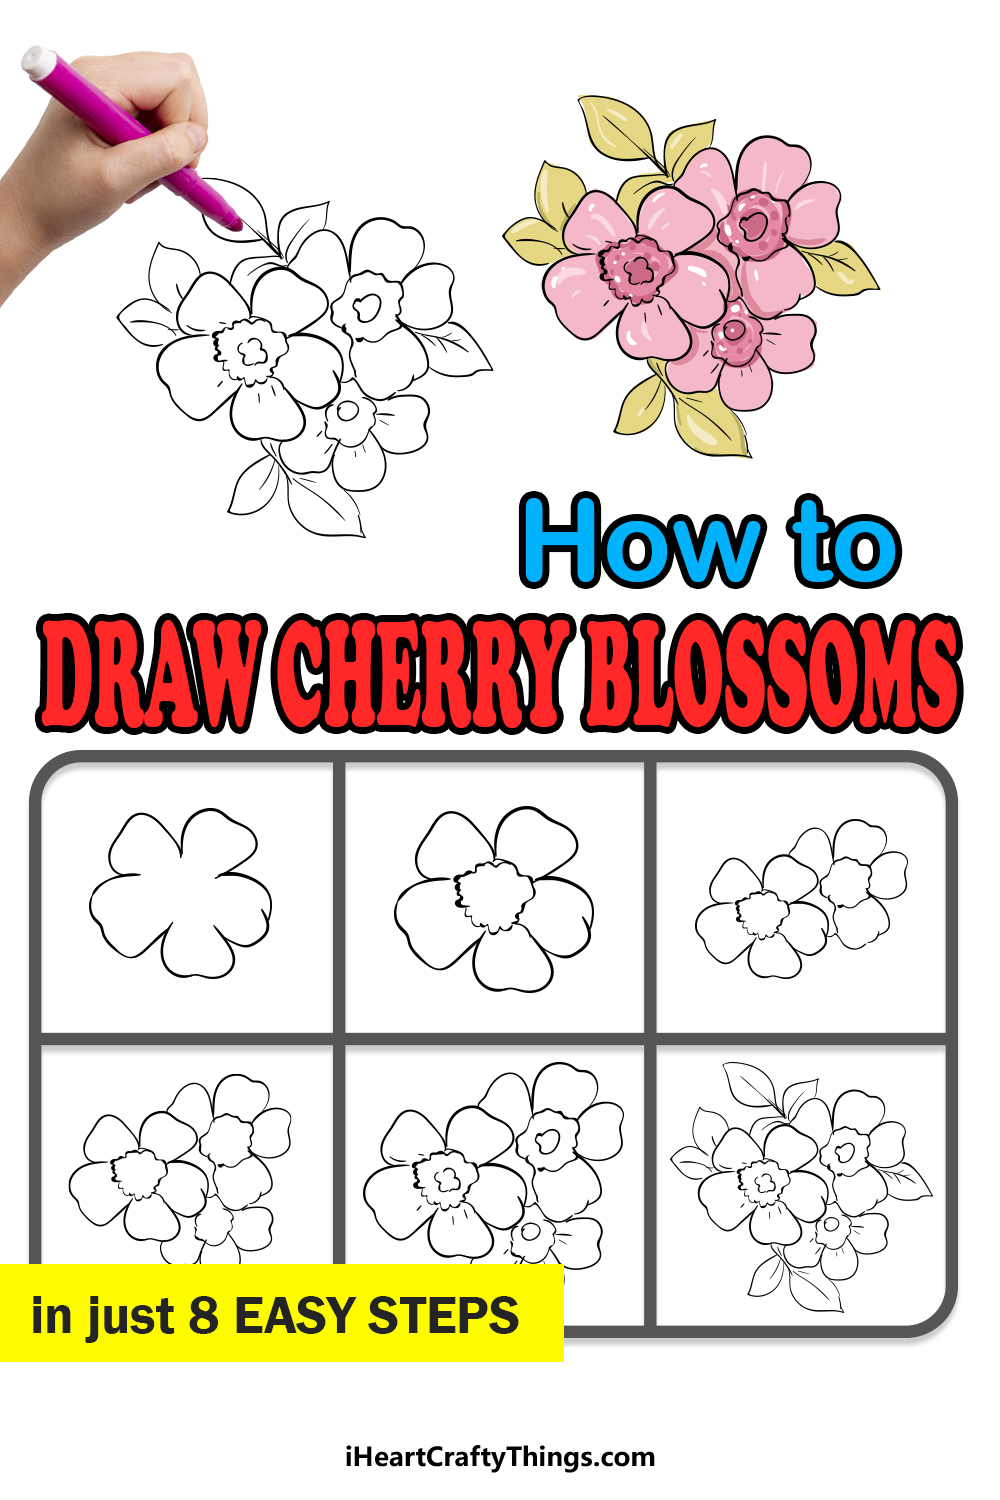 how to draw cherry blossoms in 8 easy steps